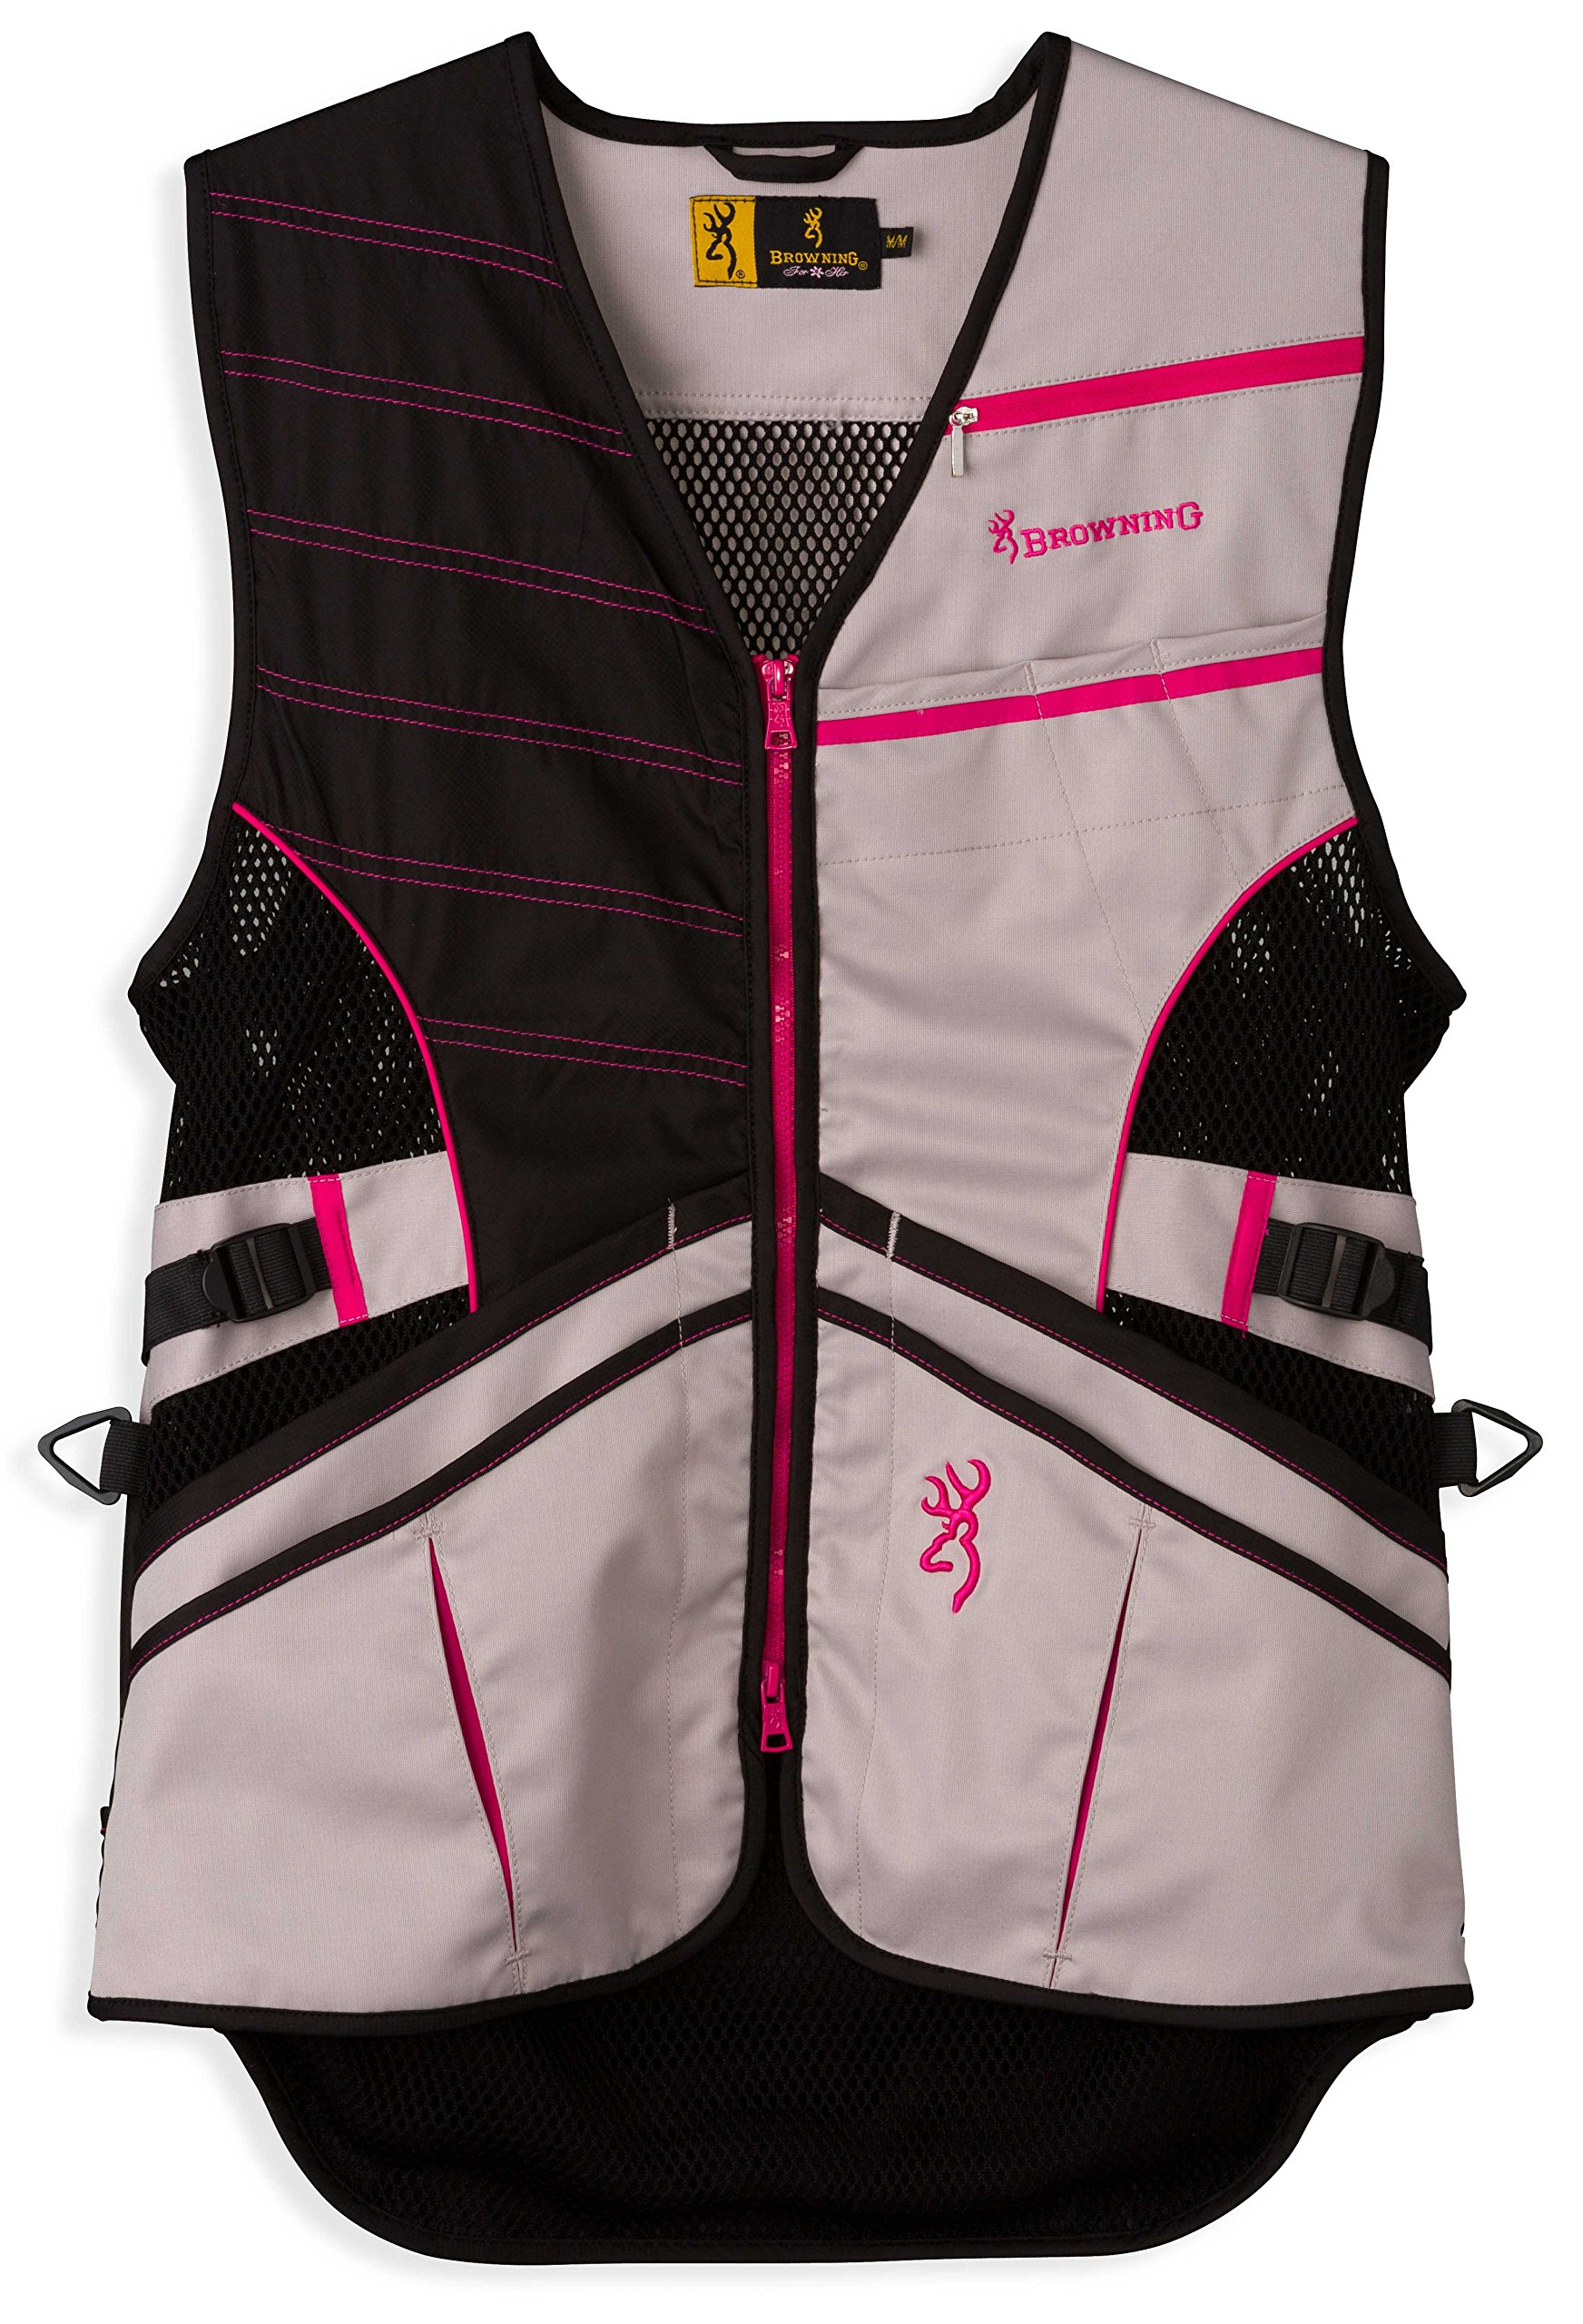 Browning Ace Shooting Vest, Hot Pink, Small